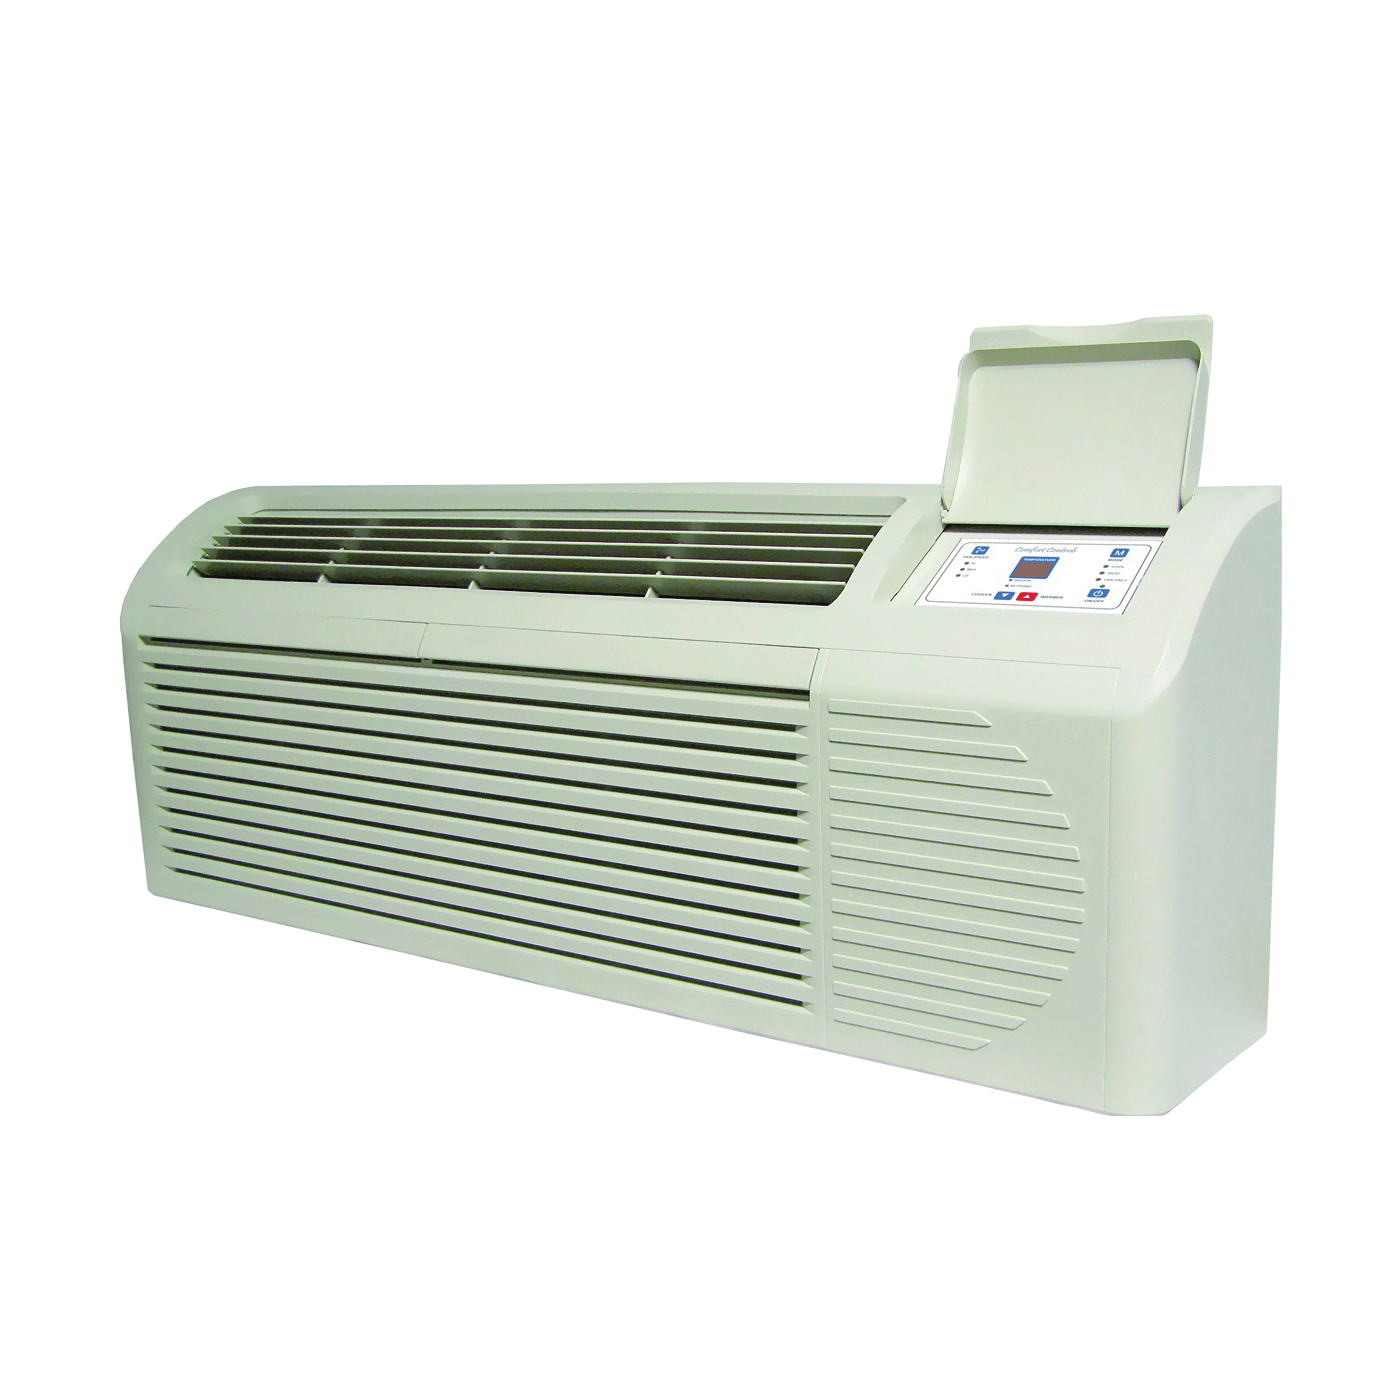 Picture of Comfort-Aire PTAC Series EKTC09-1G-3-KIT Air Conditioner Kit, 208/230 V, 9000 Btu Cooling, Electronic Control